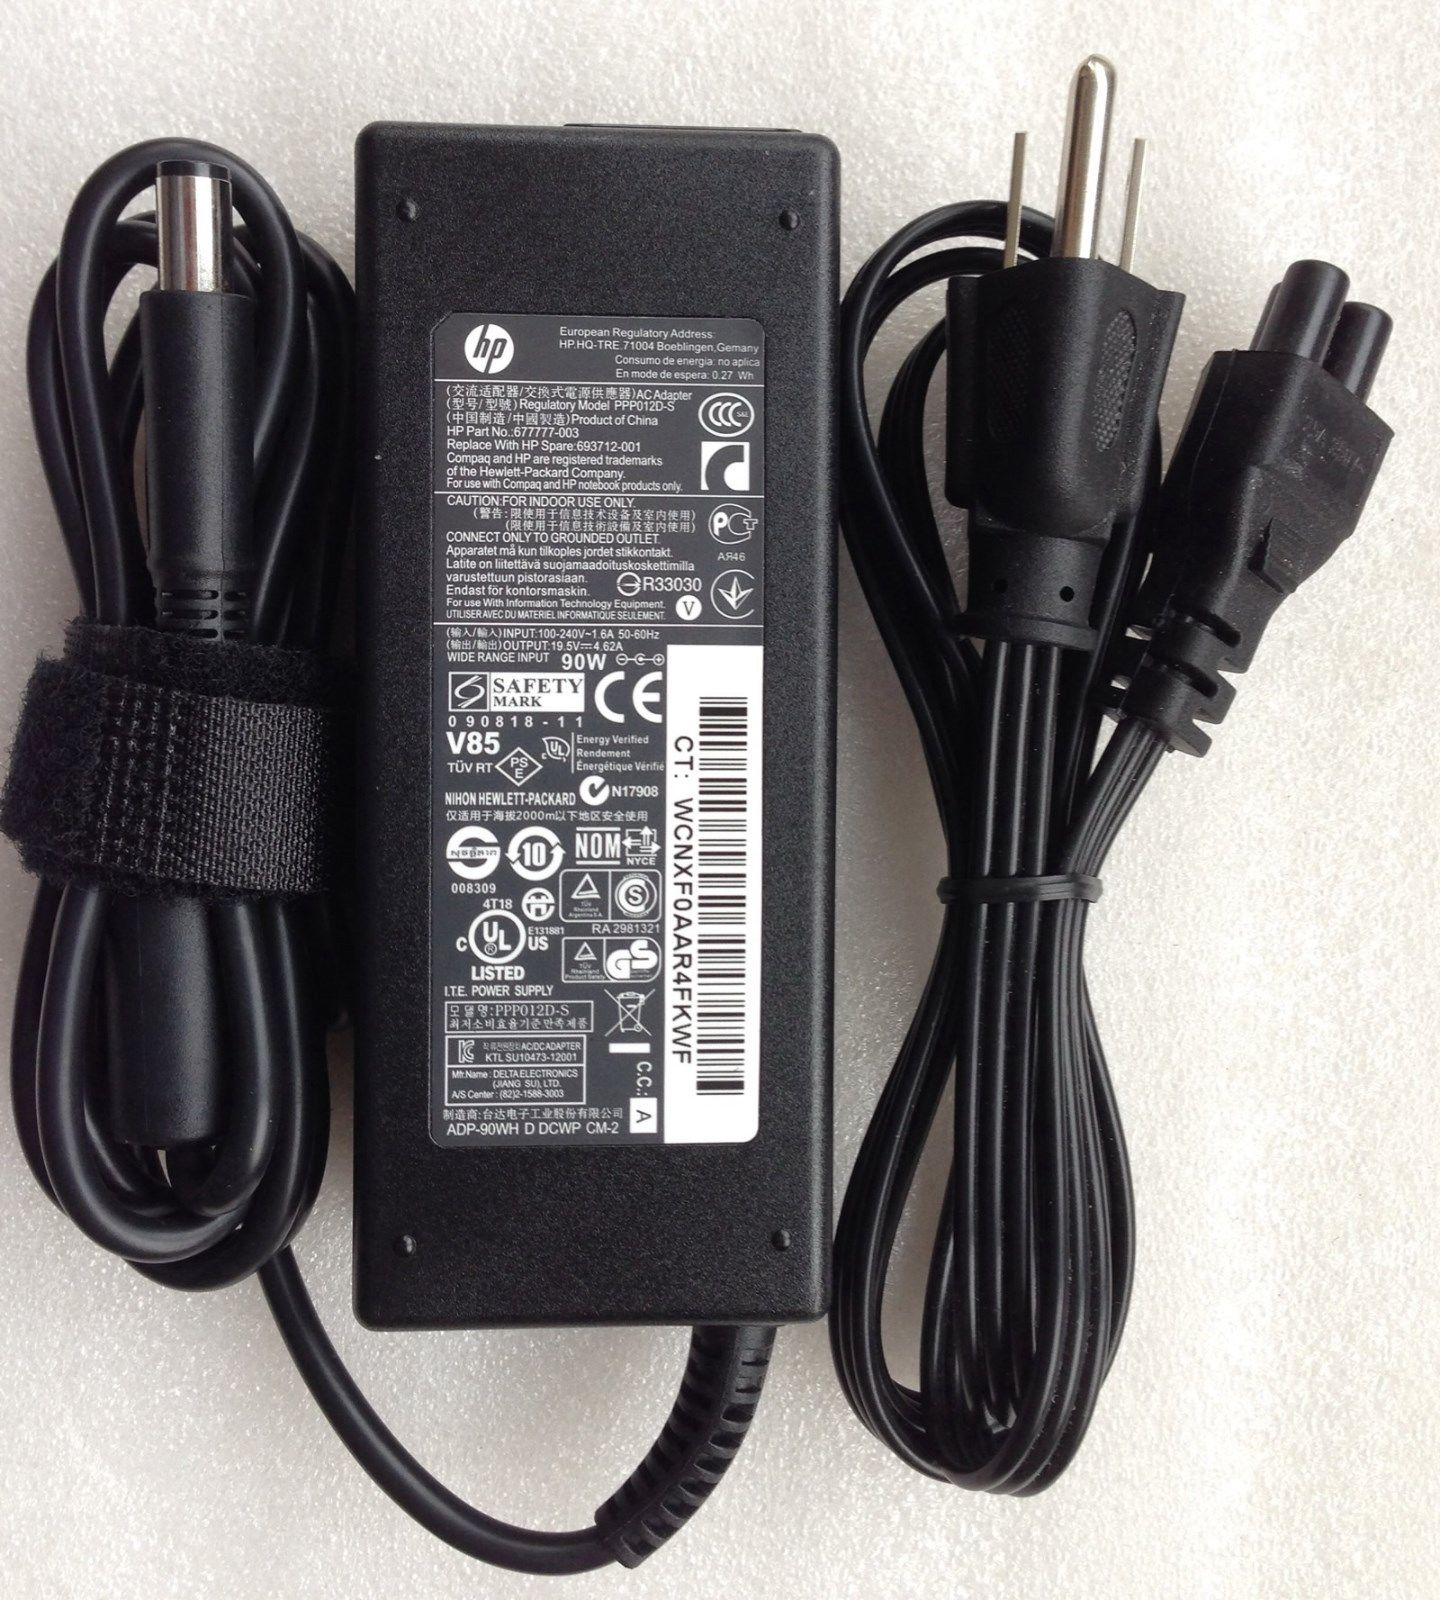 90W HP ENVY m6-1184ca 67777-003 Chargeurs